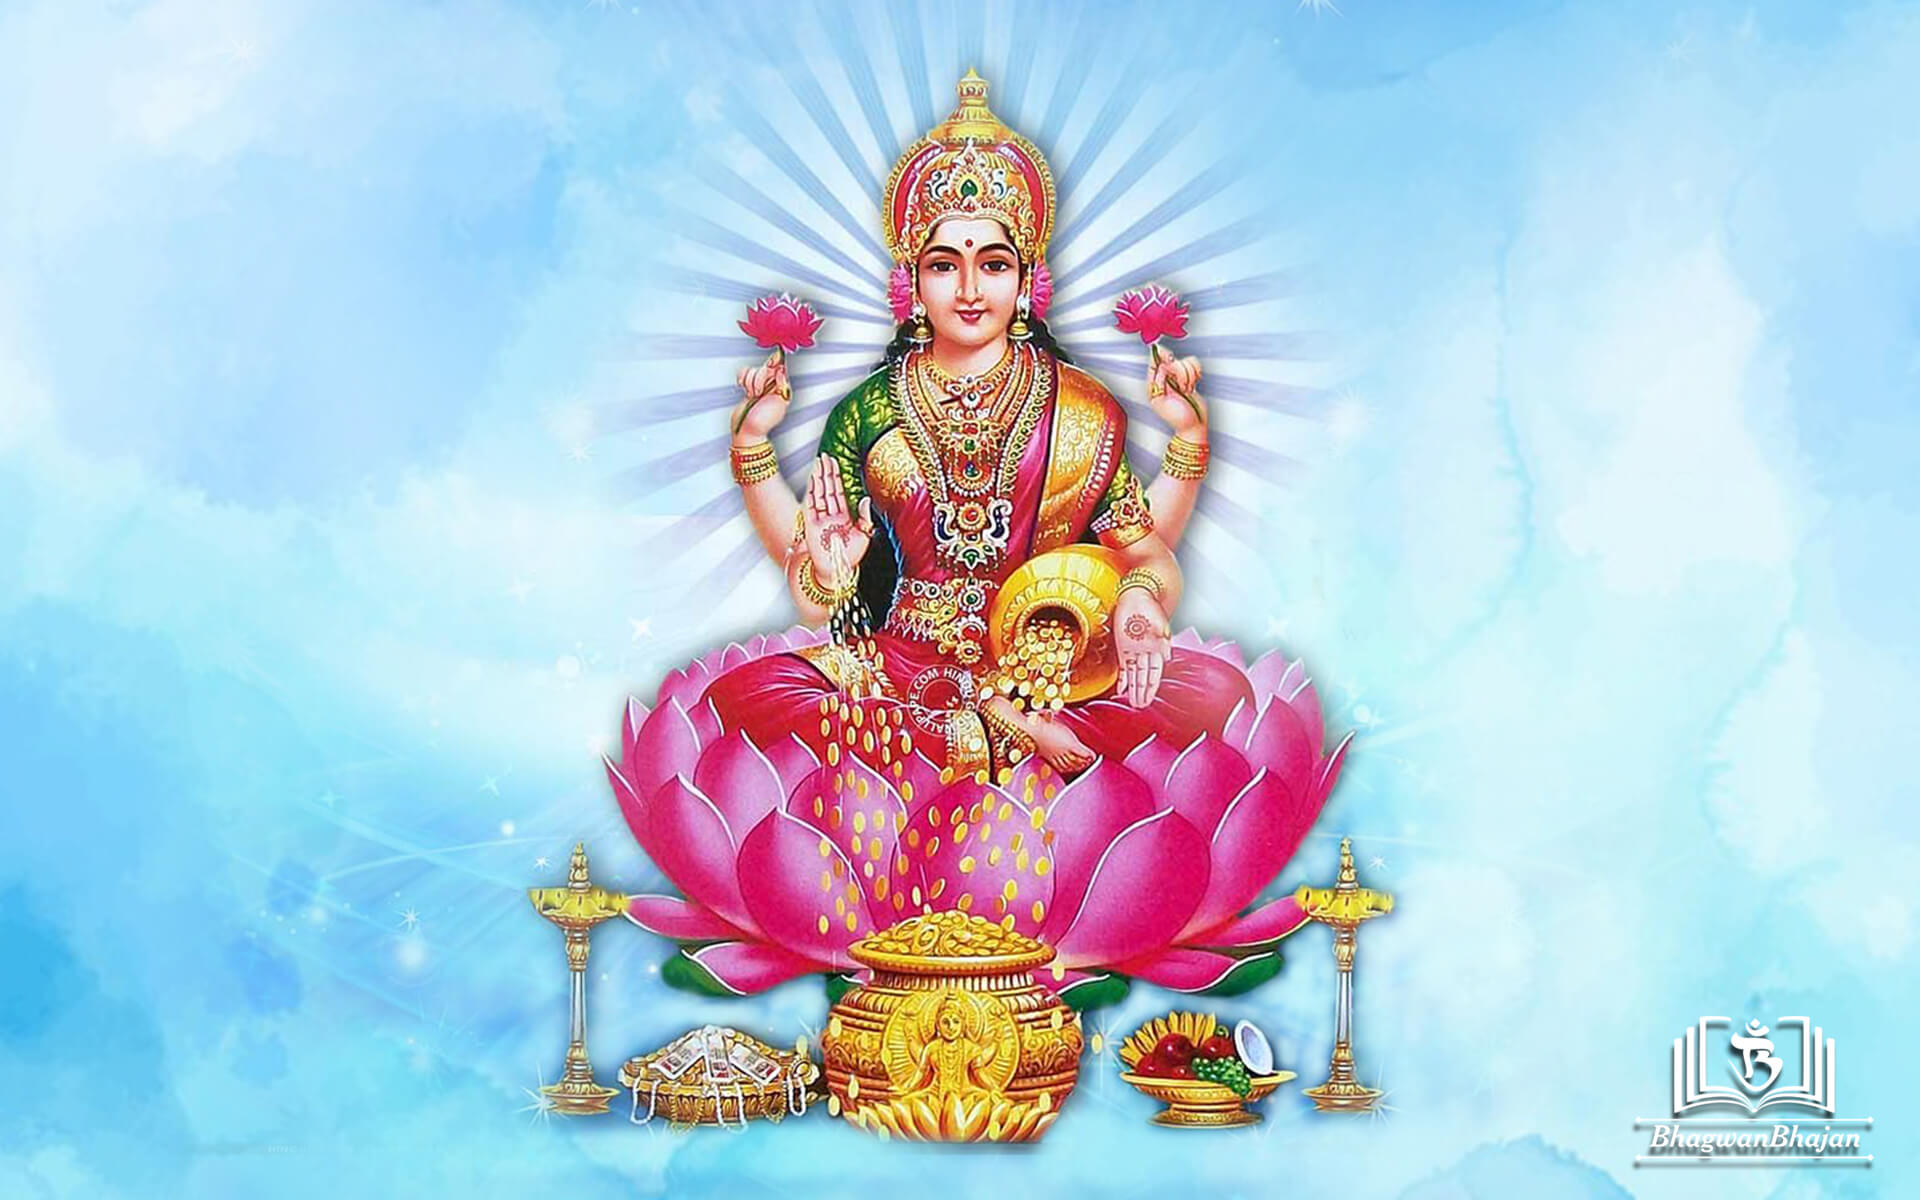 laxmi devi mahalaxmi hd wallpaper download